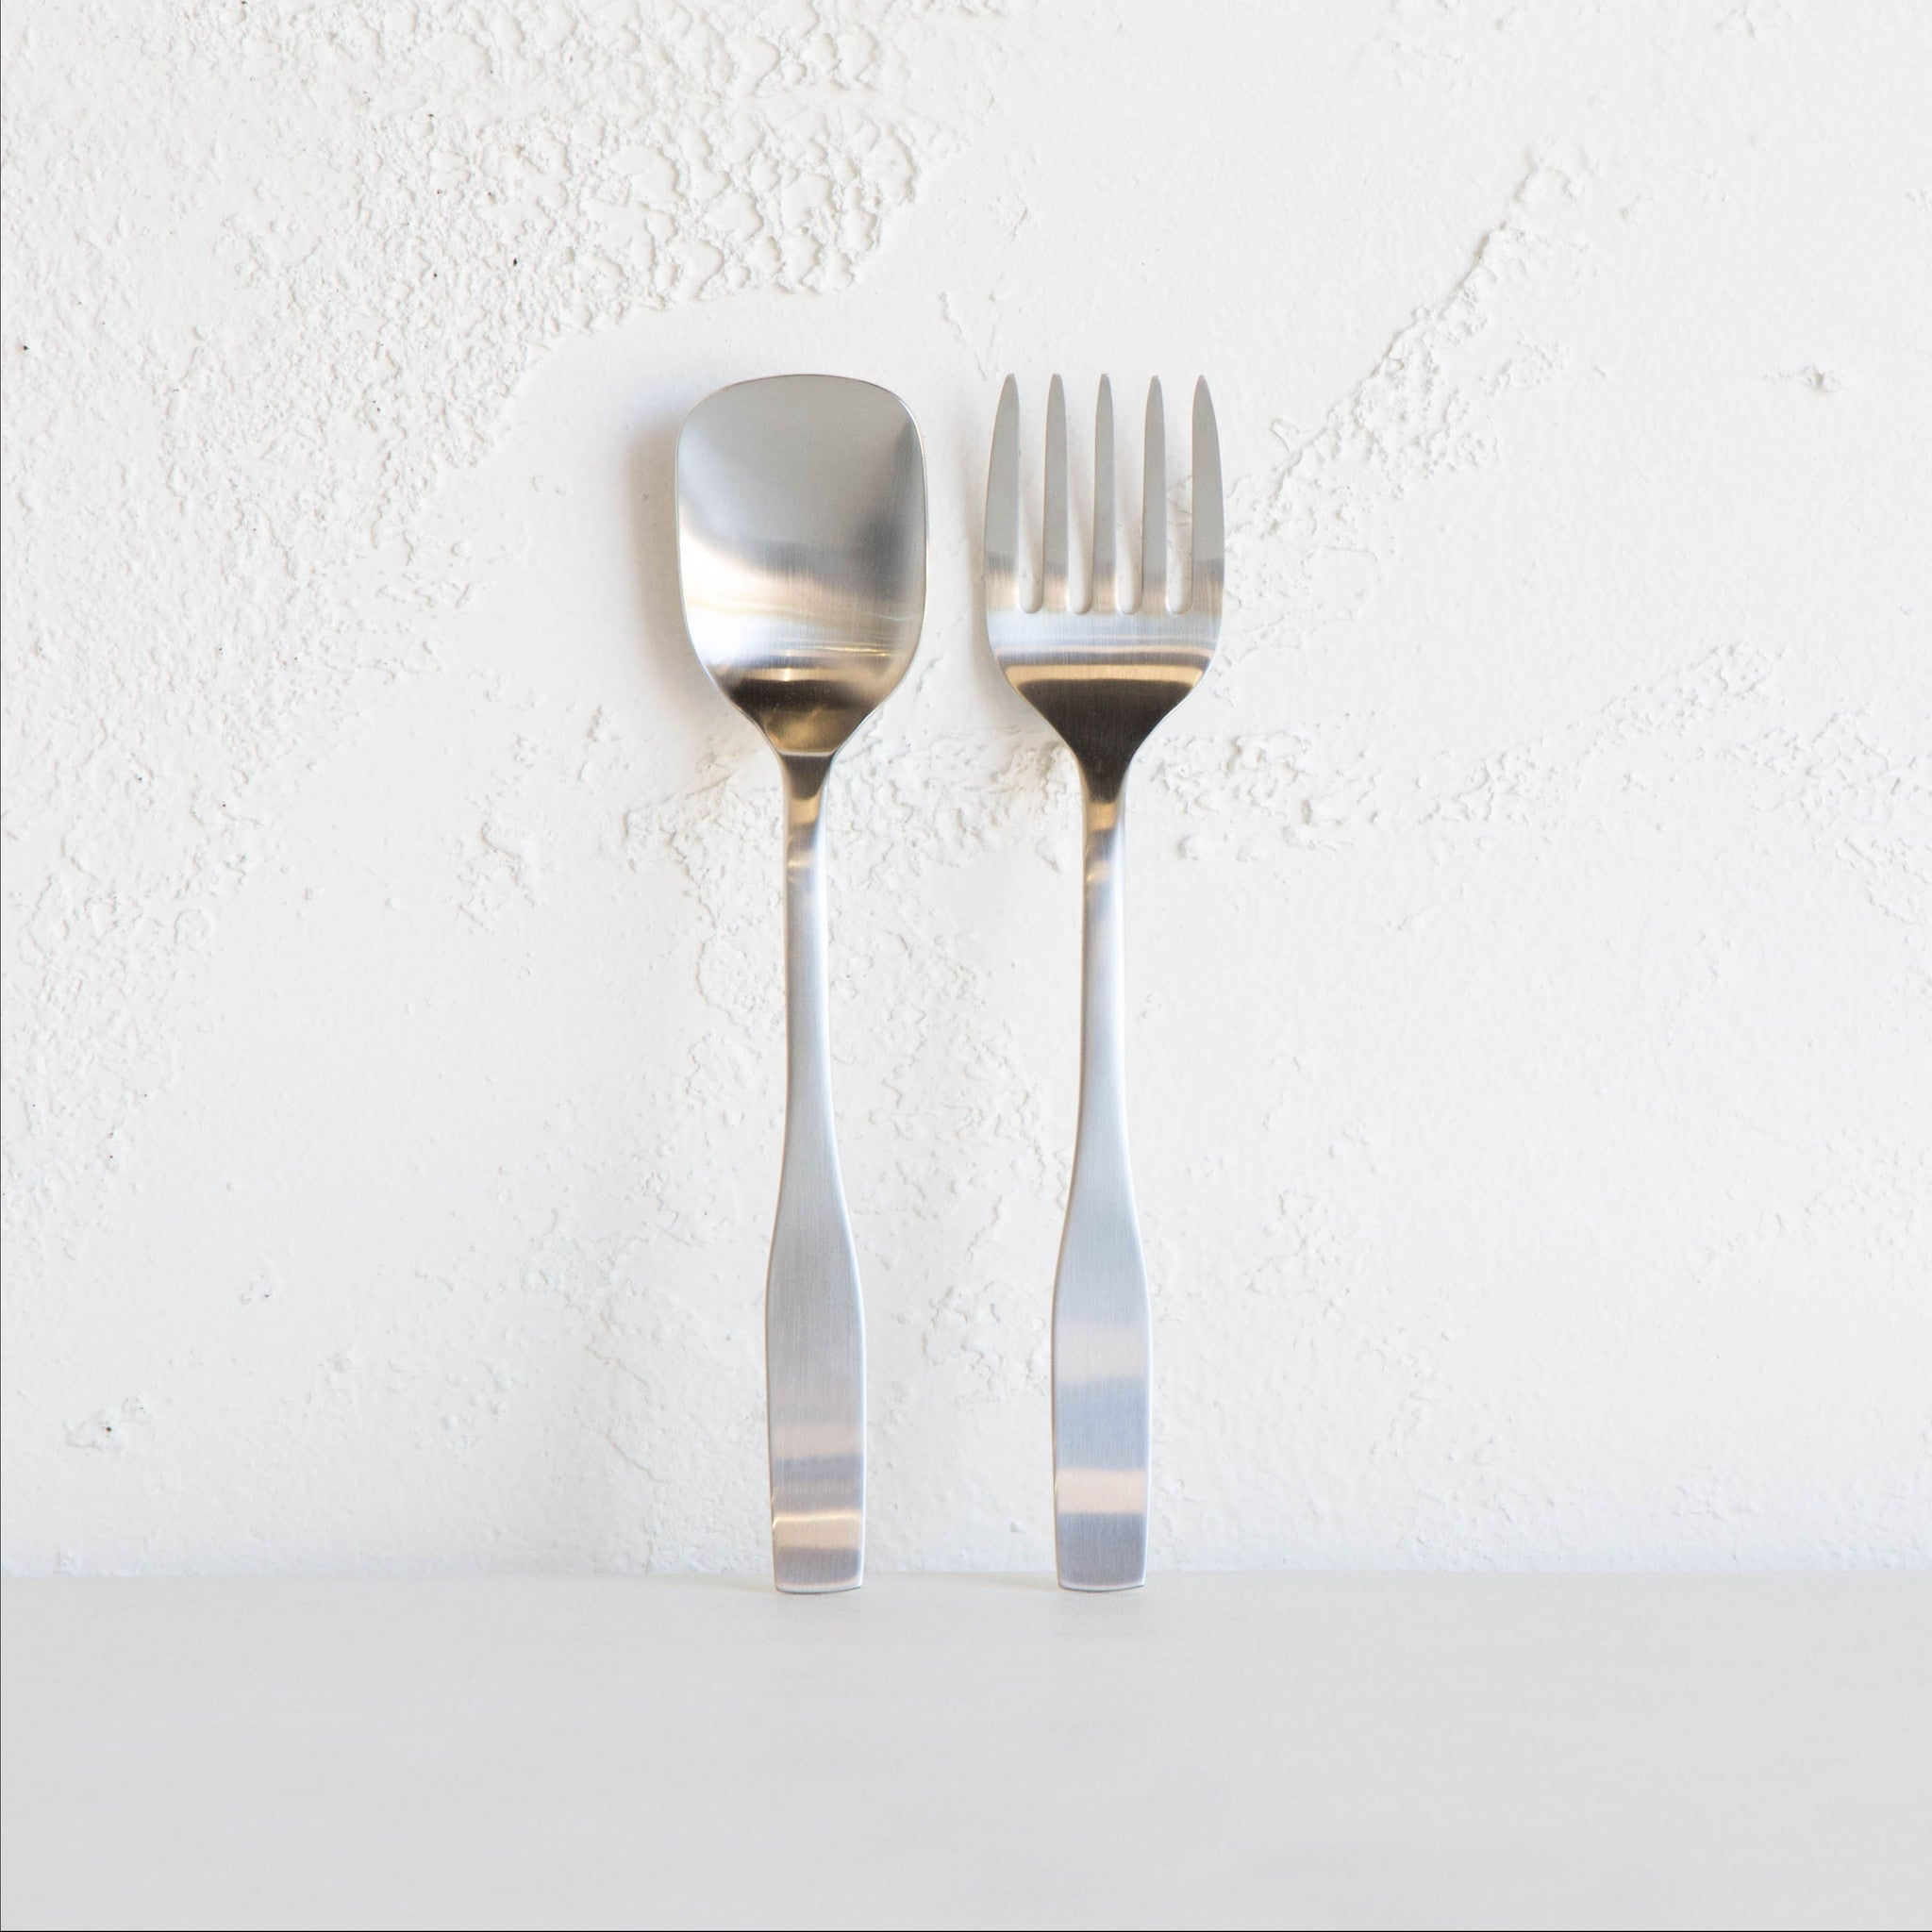 IITTALA  |  SERVING SET  |  CITTERIO 98  |  COLLECTIVE TOOLS